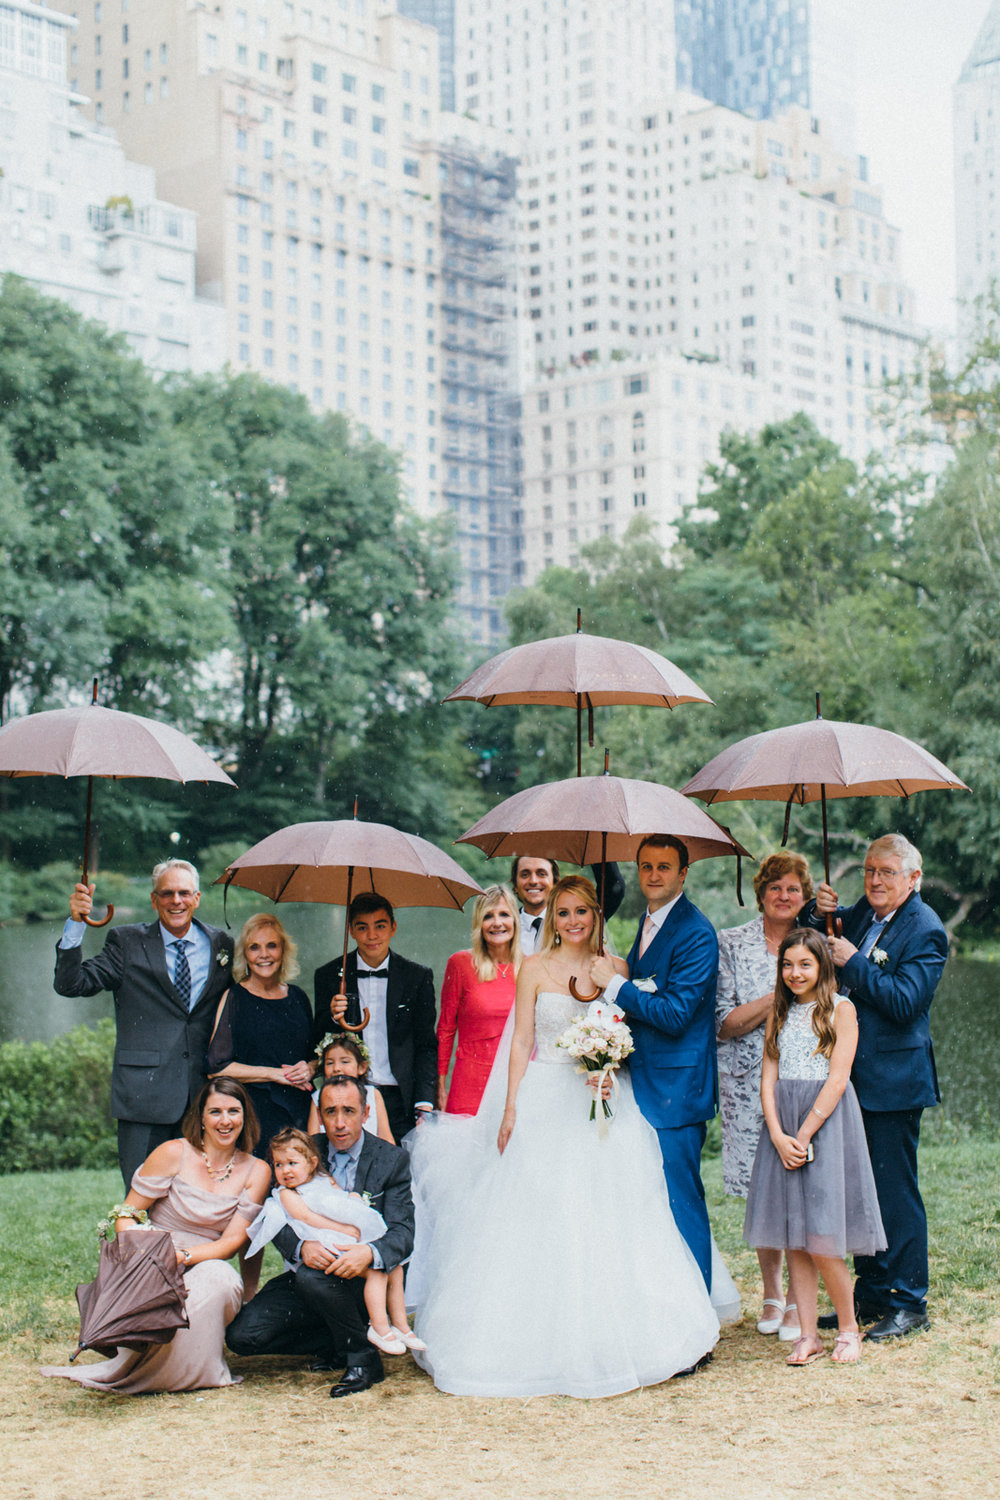 NYC Wedding Photography Sofitel Central Park Brooklyn Photographer Boris Zaretsky _B2C2508.jpg